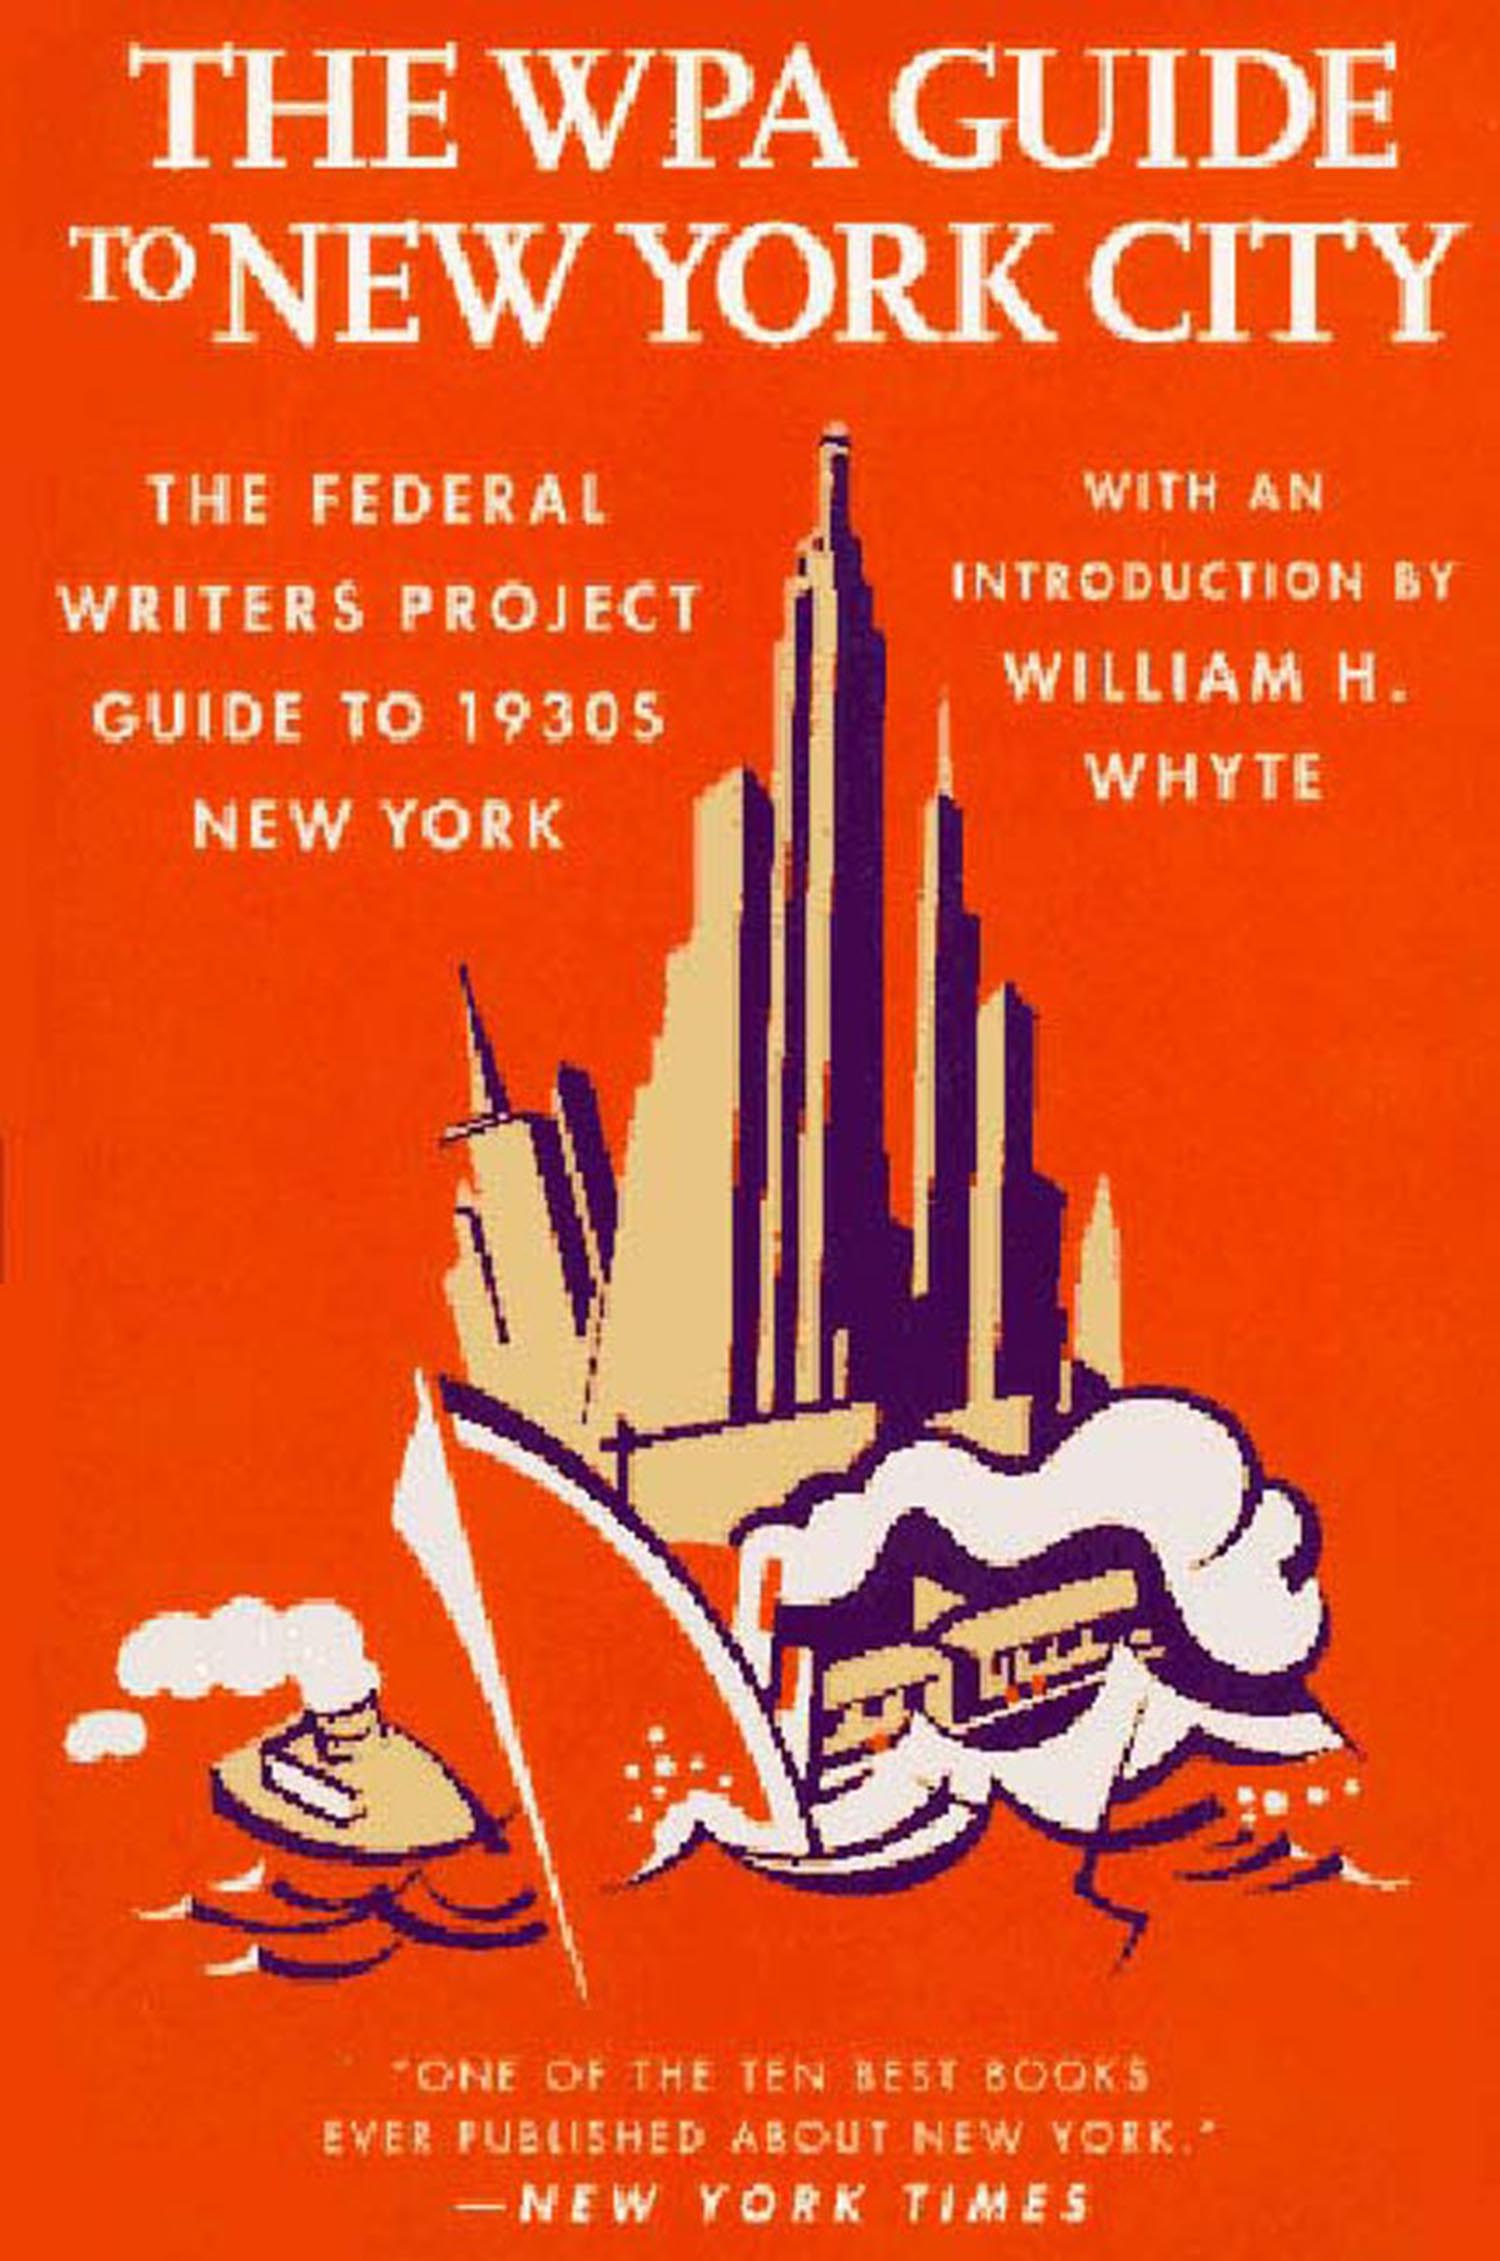 New York City and the New Deal.jpg